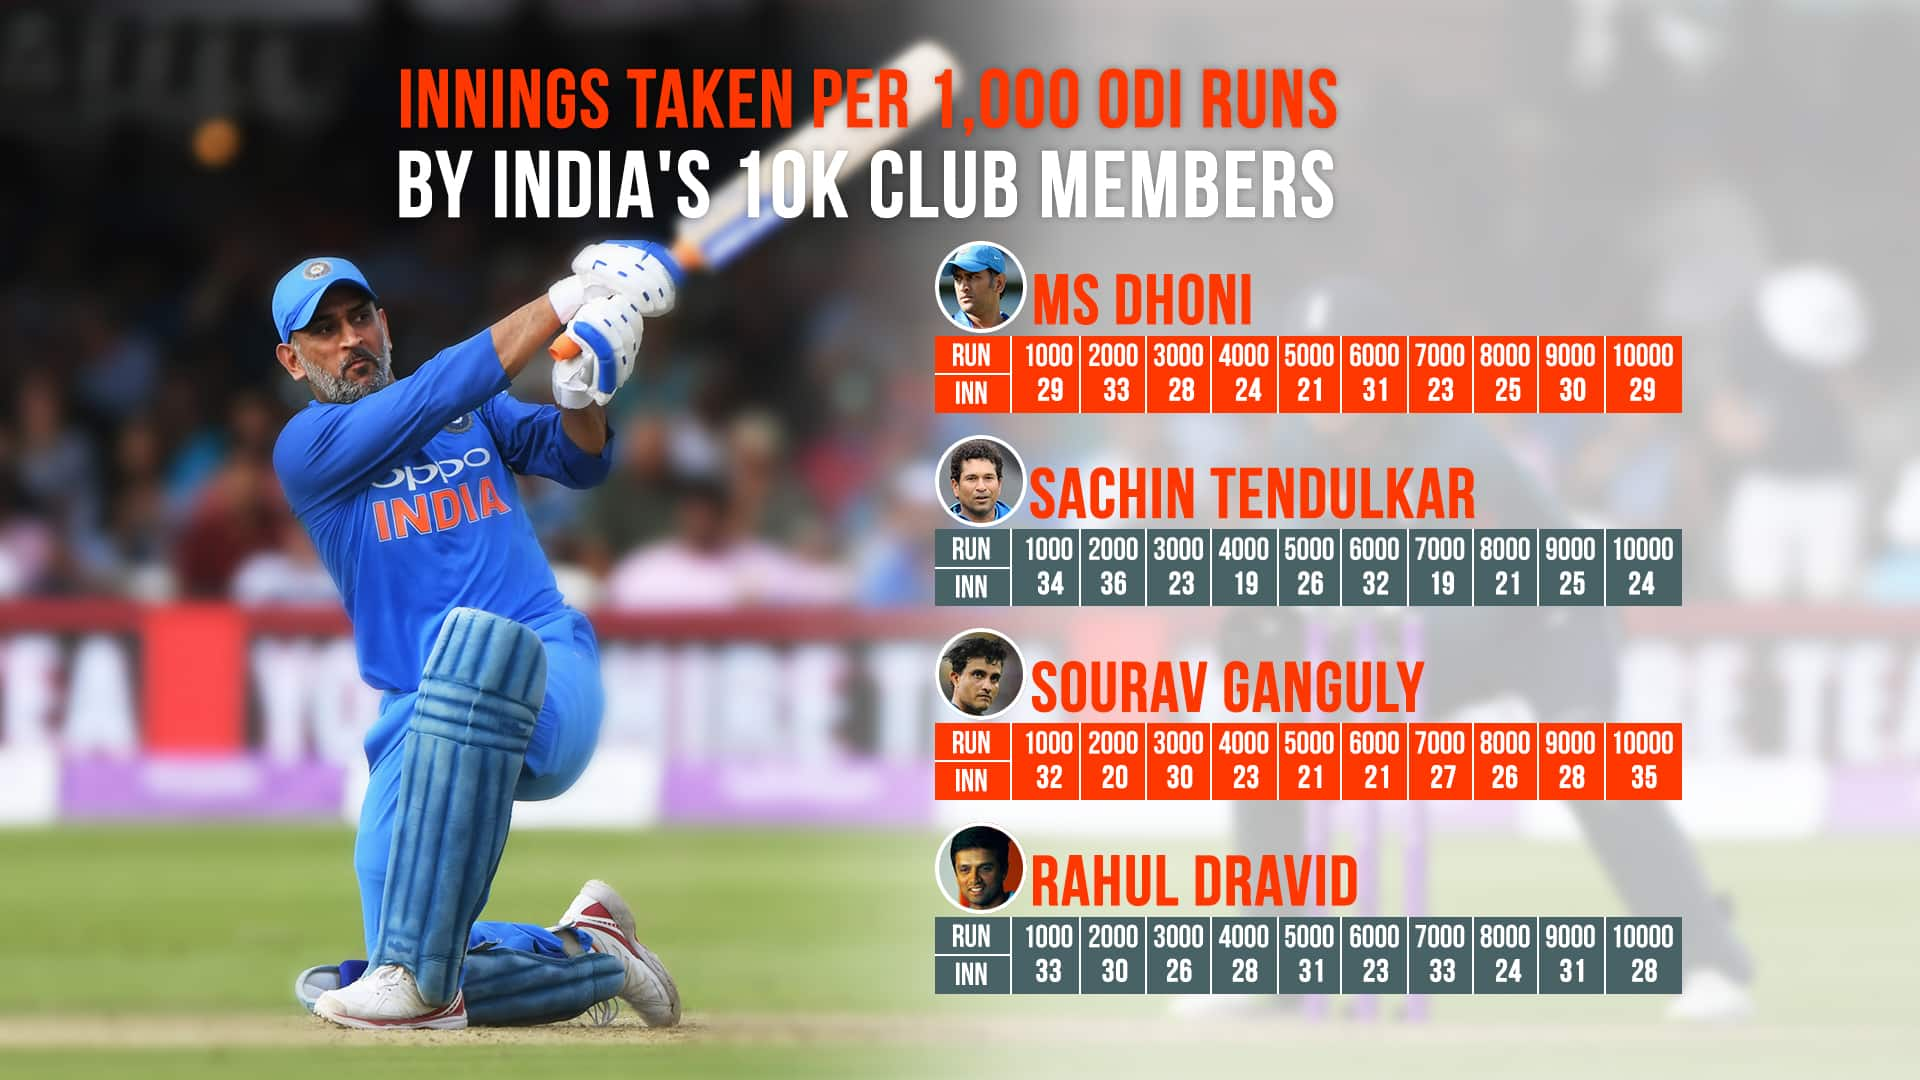 India vs England 2018: MS Dhoni completes 10,000 runs in ODIs, joins elite club of 12